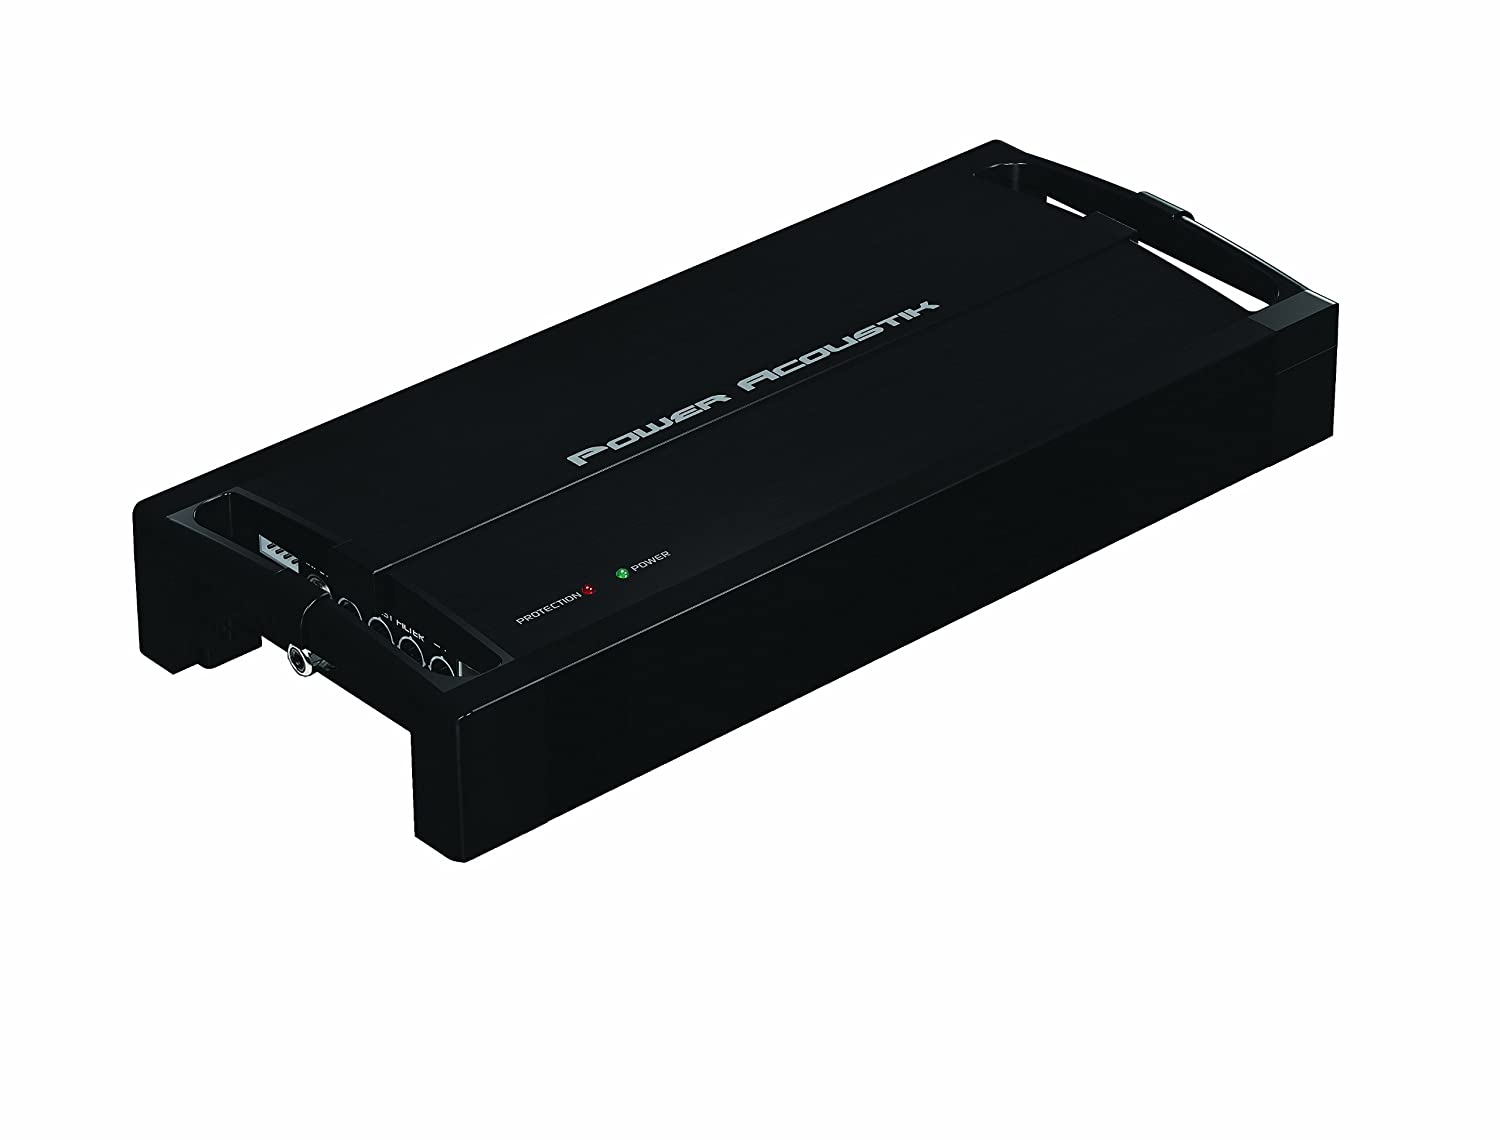 POWER ACOUSTIK RZ1-2300D RAZOR Nano 1 Channel Mono 2300 Watt Amplifier (Black)